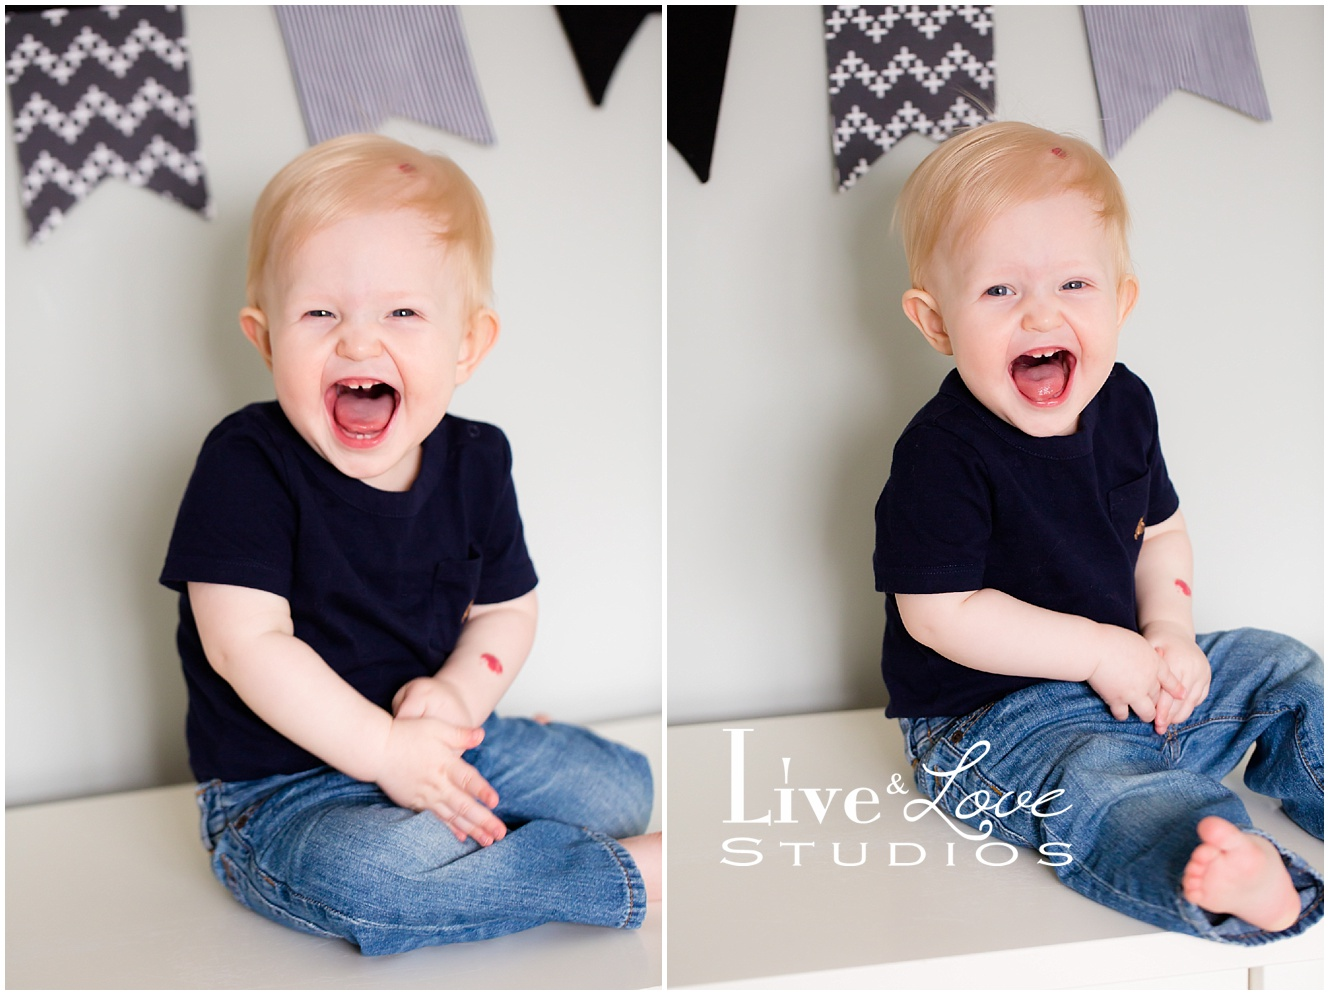 eagan-mn-lifestyle-toddler-photography_0808.jpg